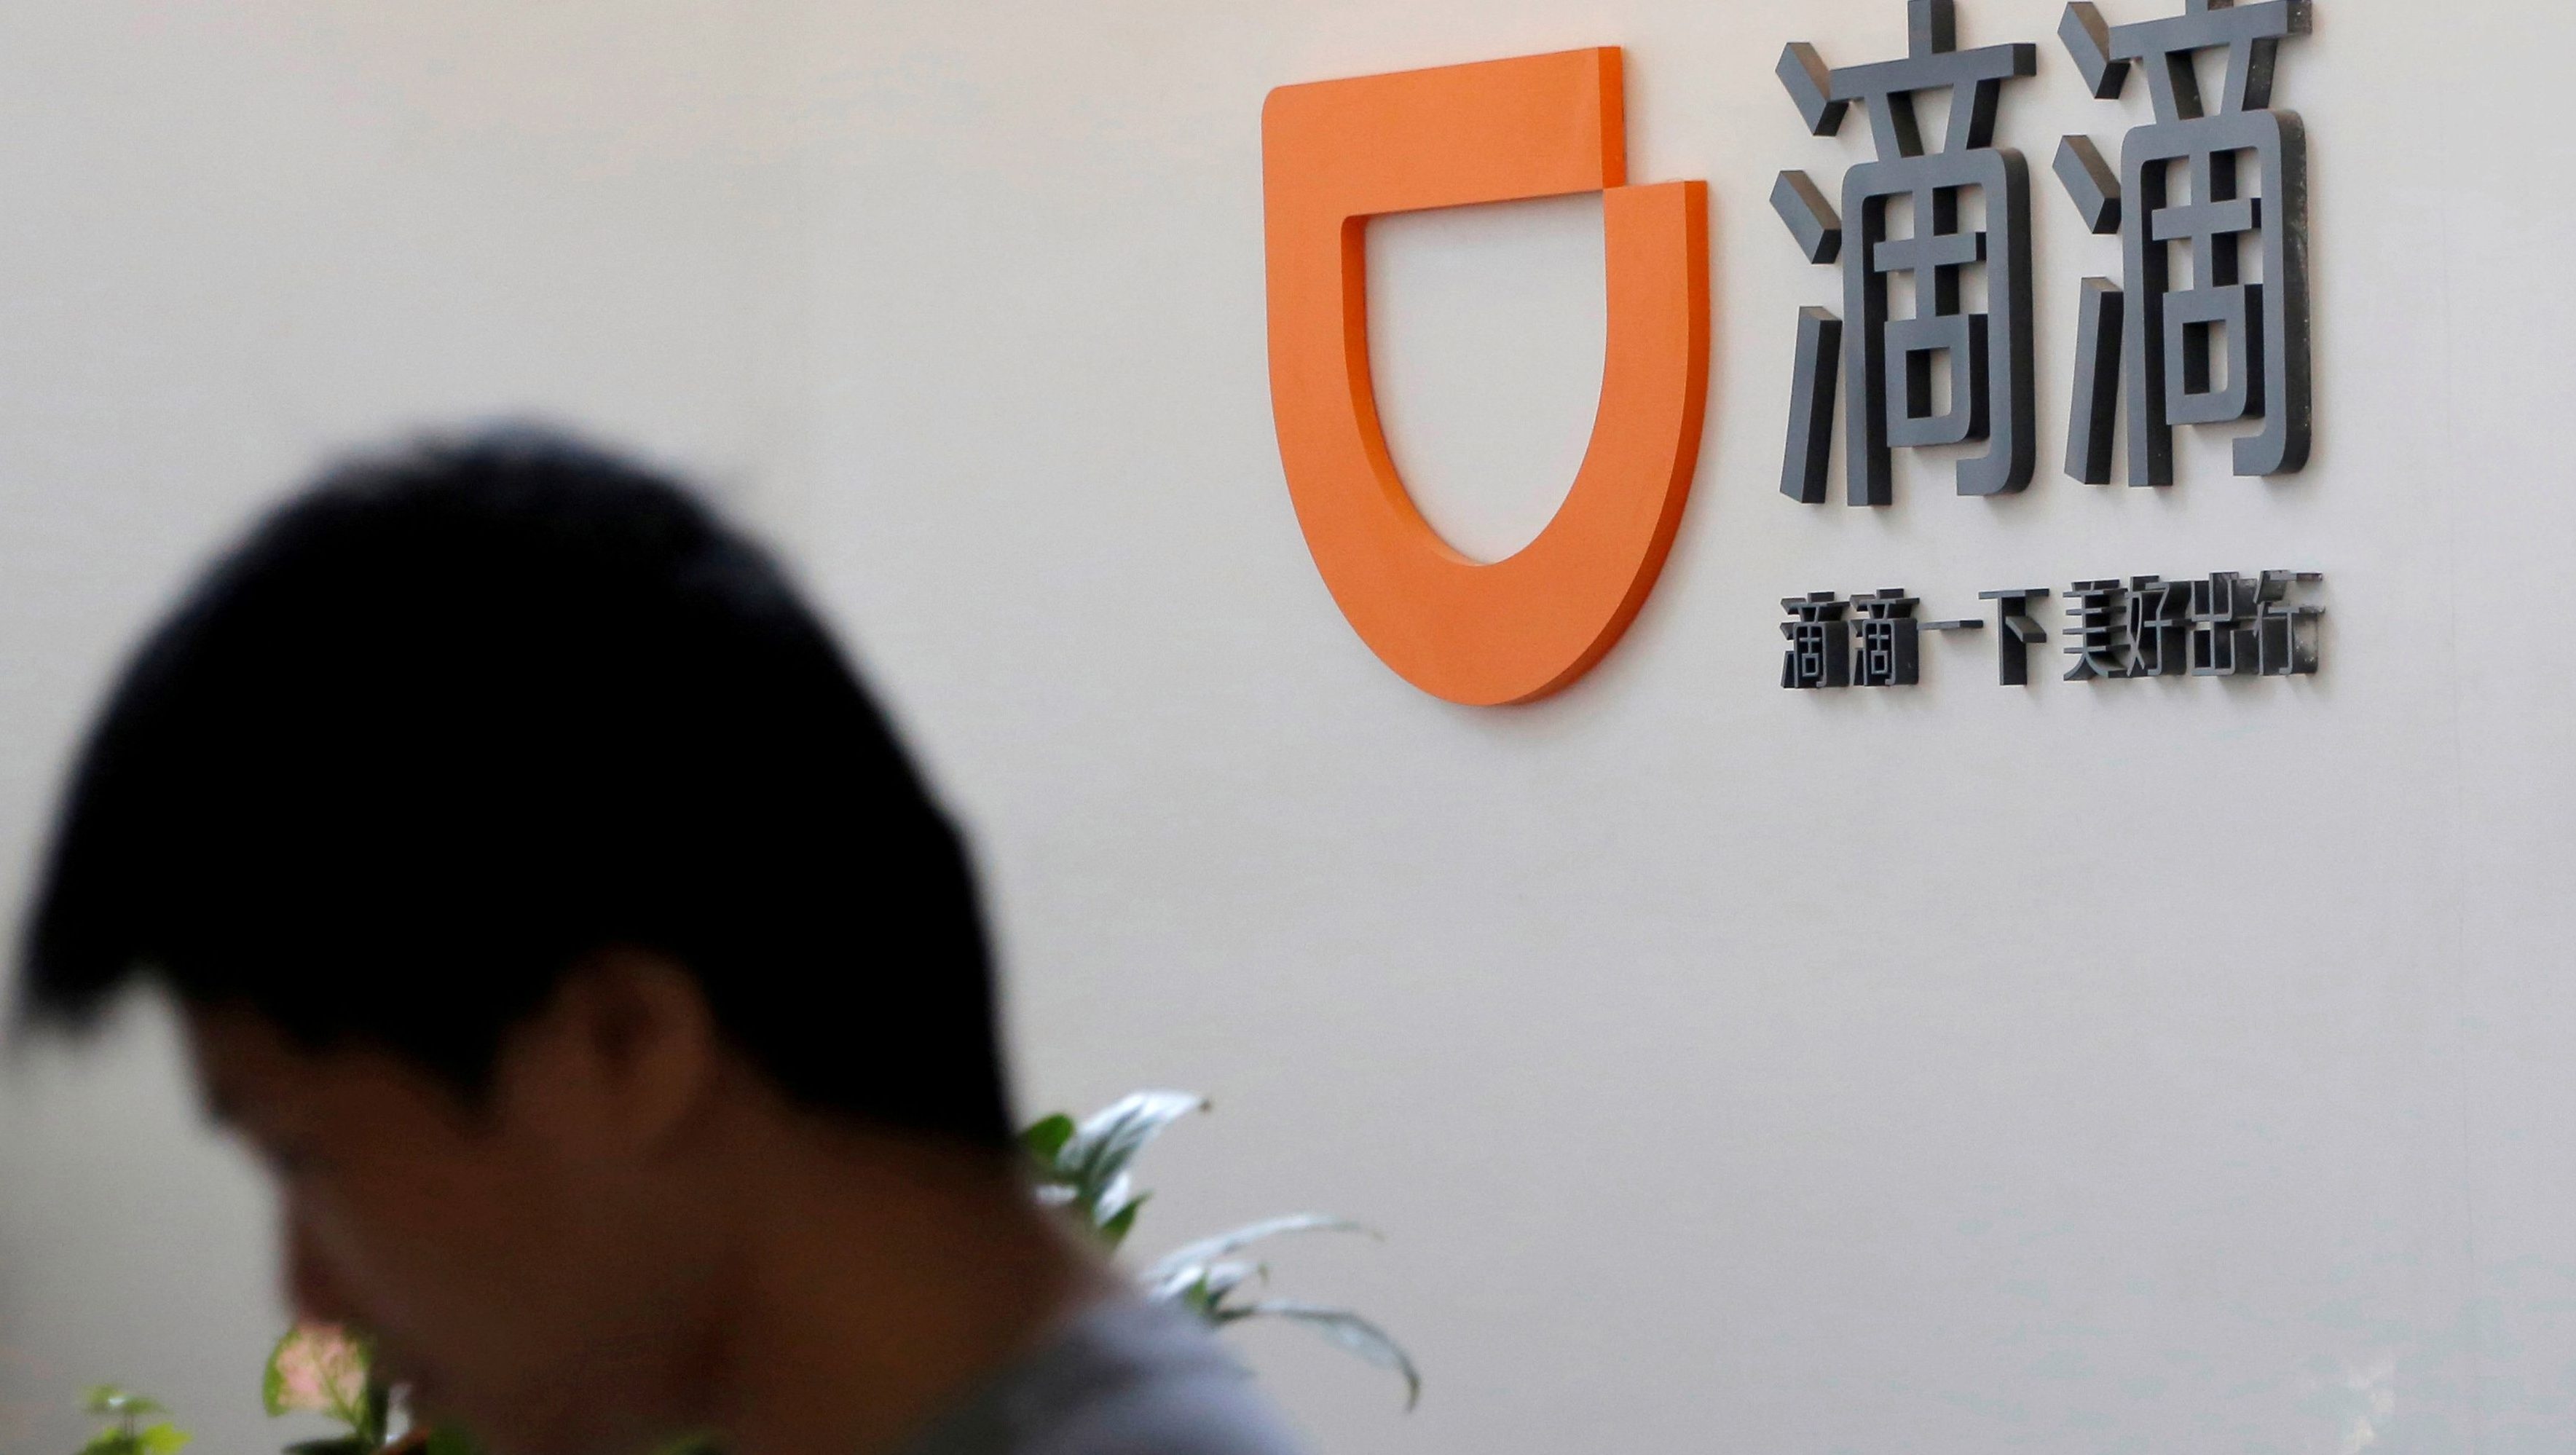 The logo of Didi Chuxing is seen at its headquarters in Beijing, China, May 18, 2016.